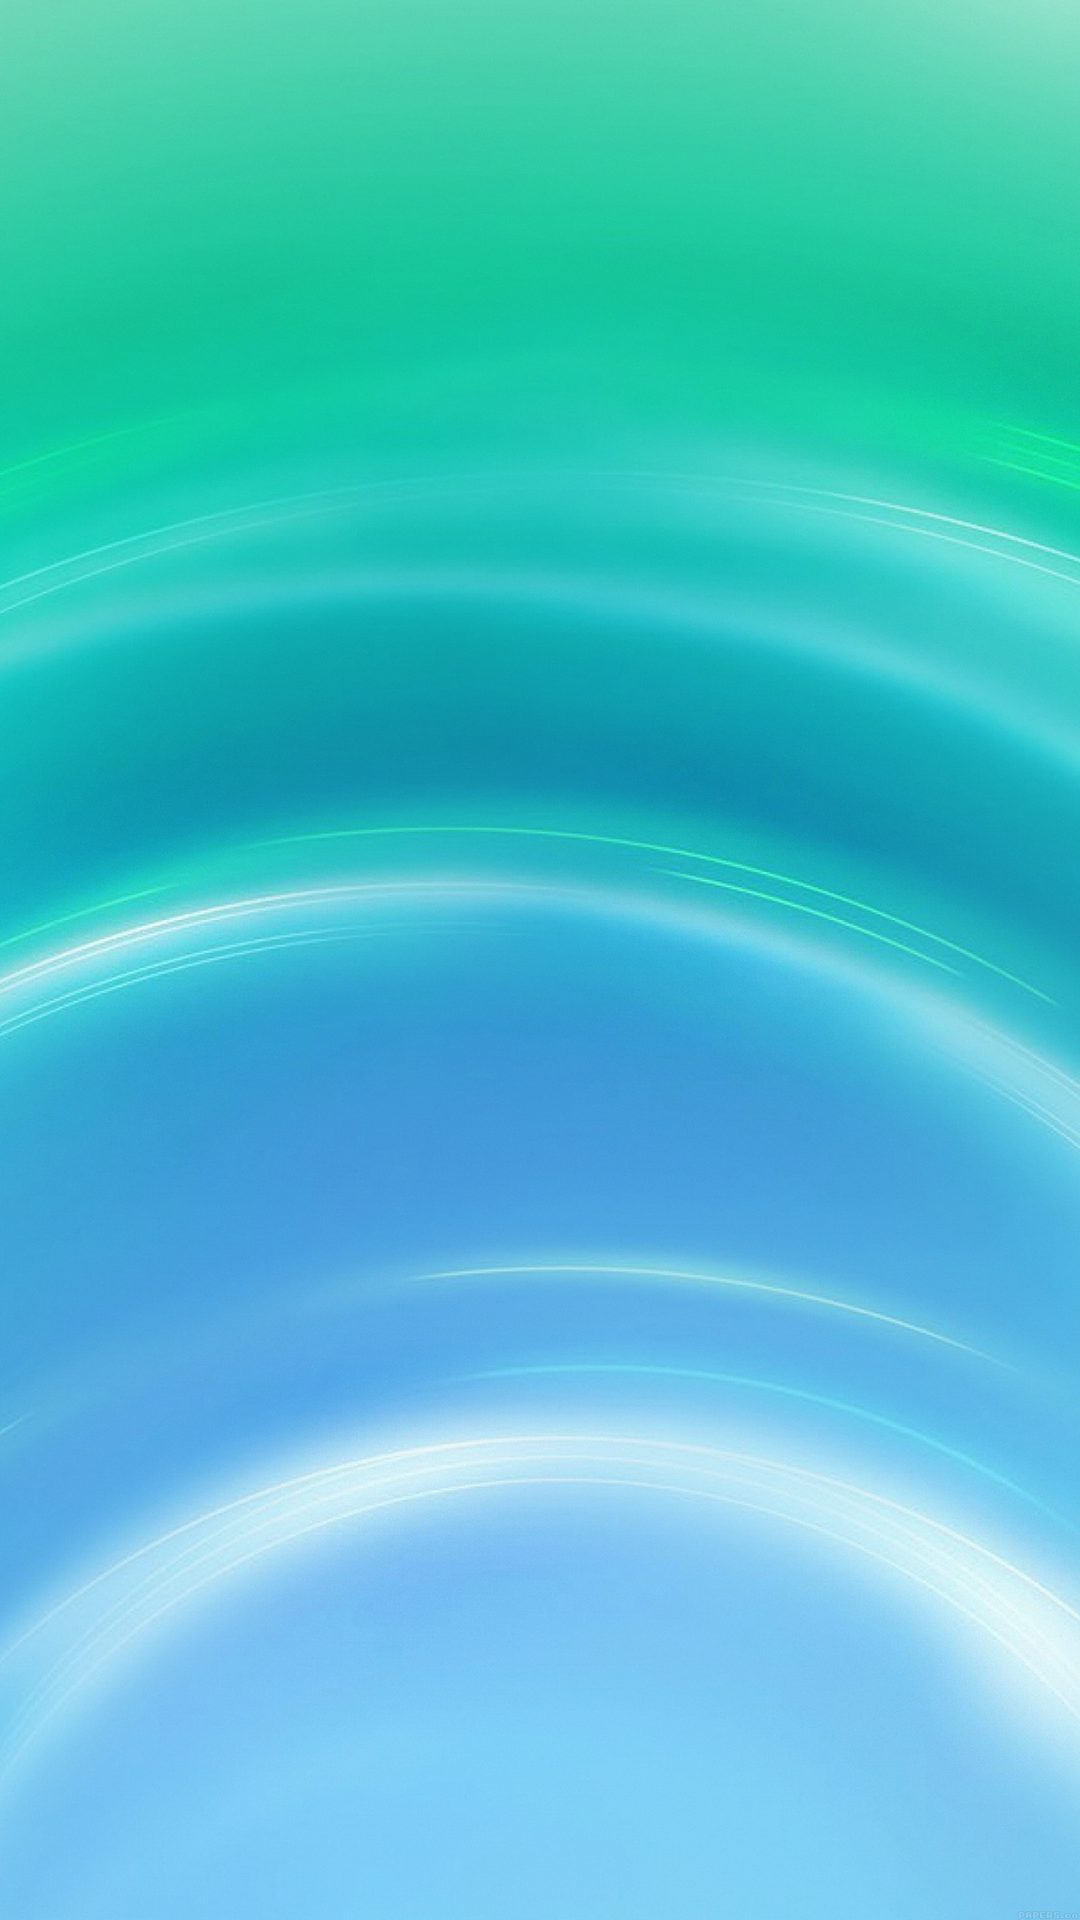 Circle Blue Green Abstract Light Pattern